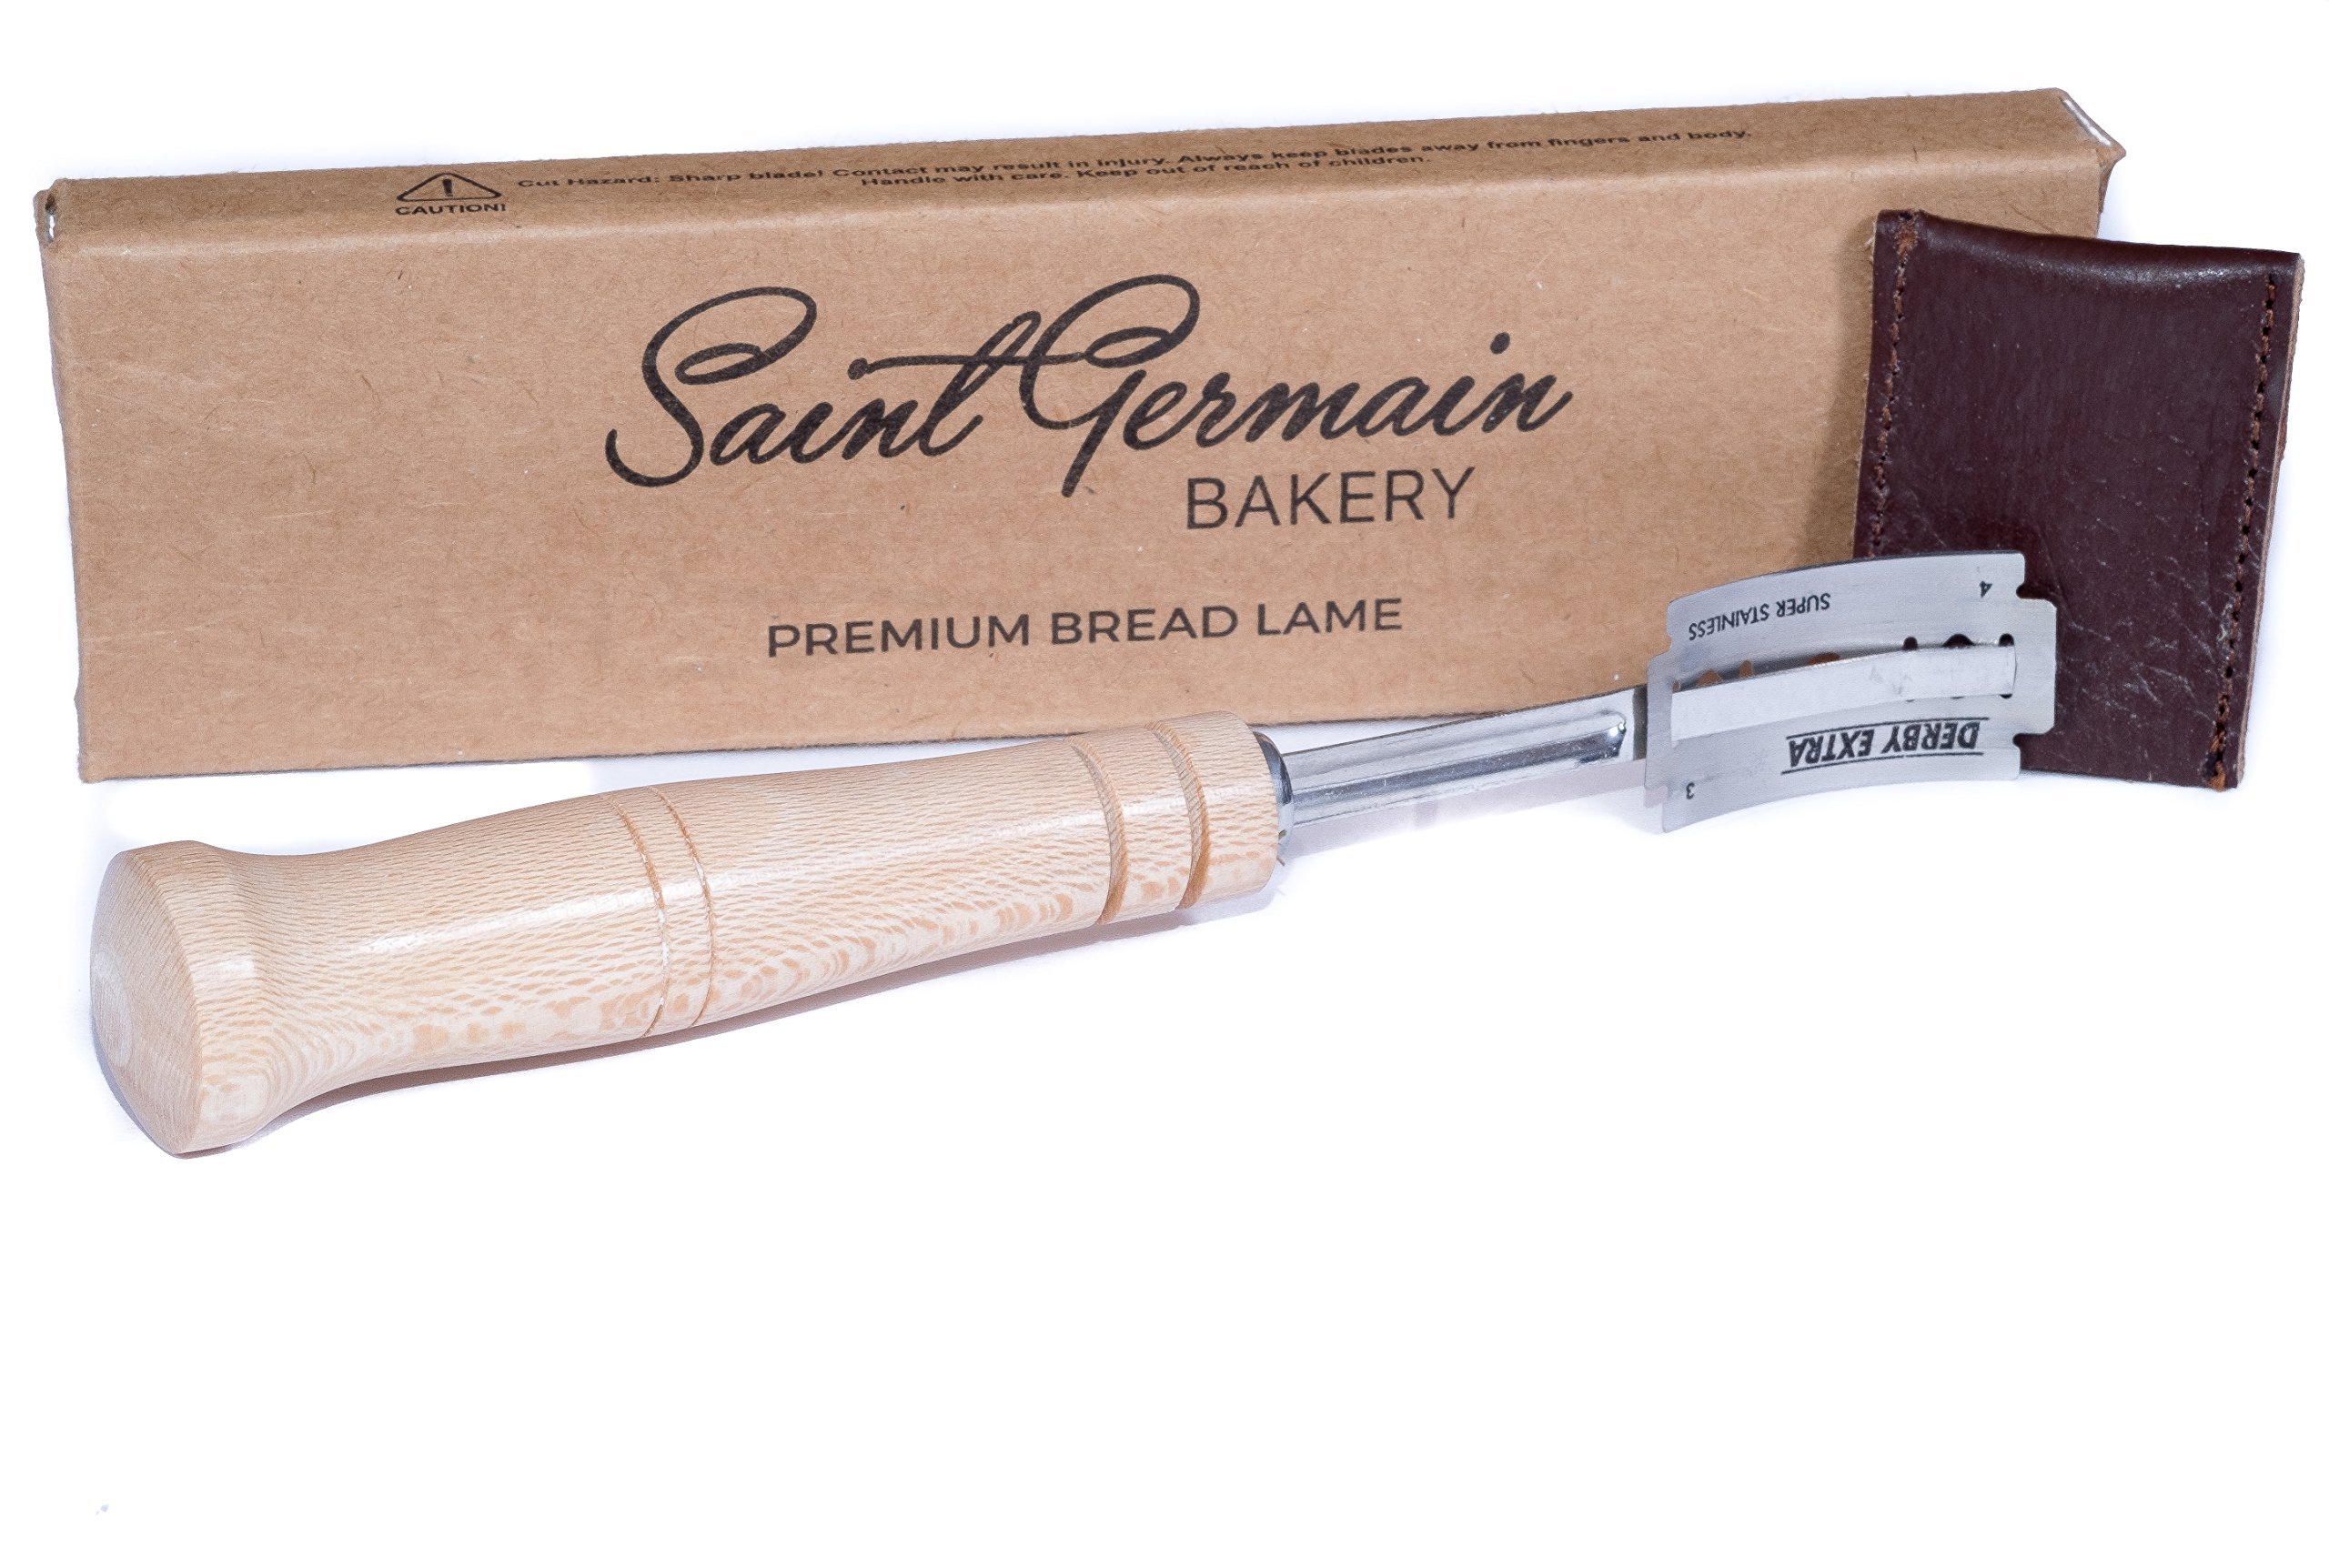 SAINT GERMAIN Premium Hand Crafted Bread Lame with 6 Blades Included - Best Dough Scoring Tool with Authentic Leather Protective Cover by Saint Germain